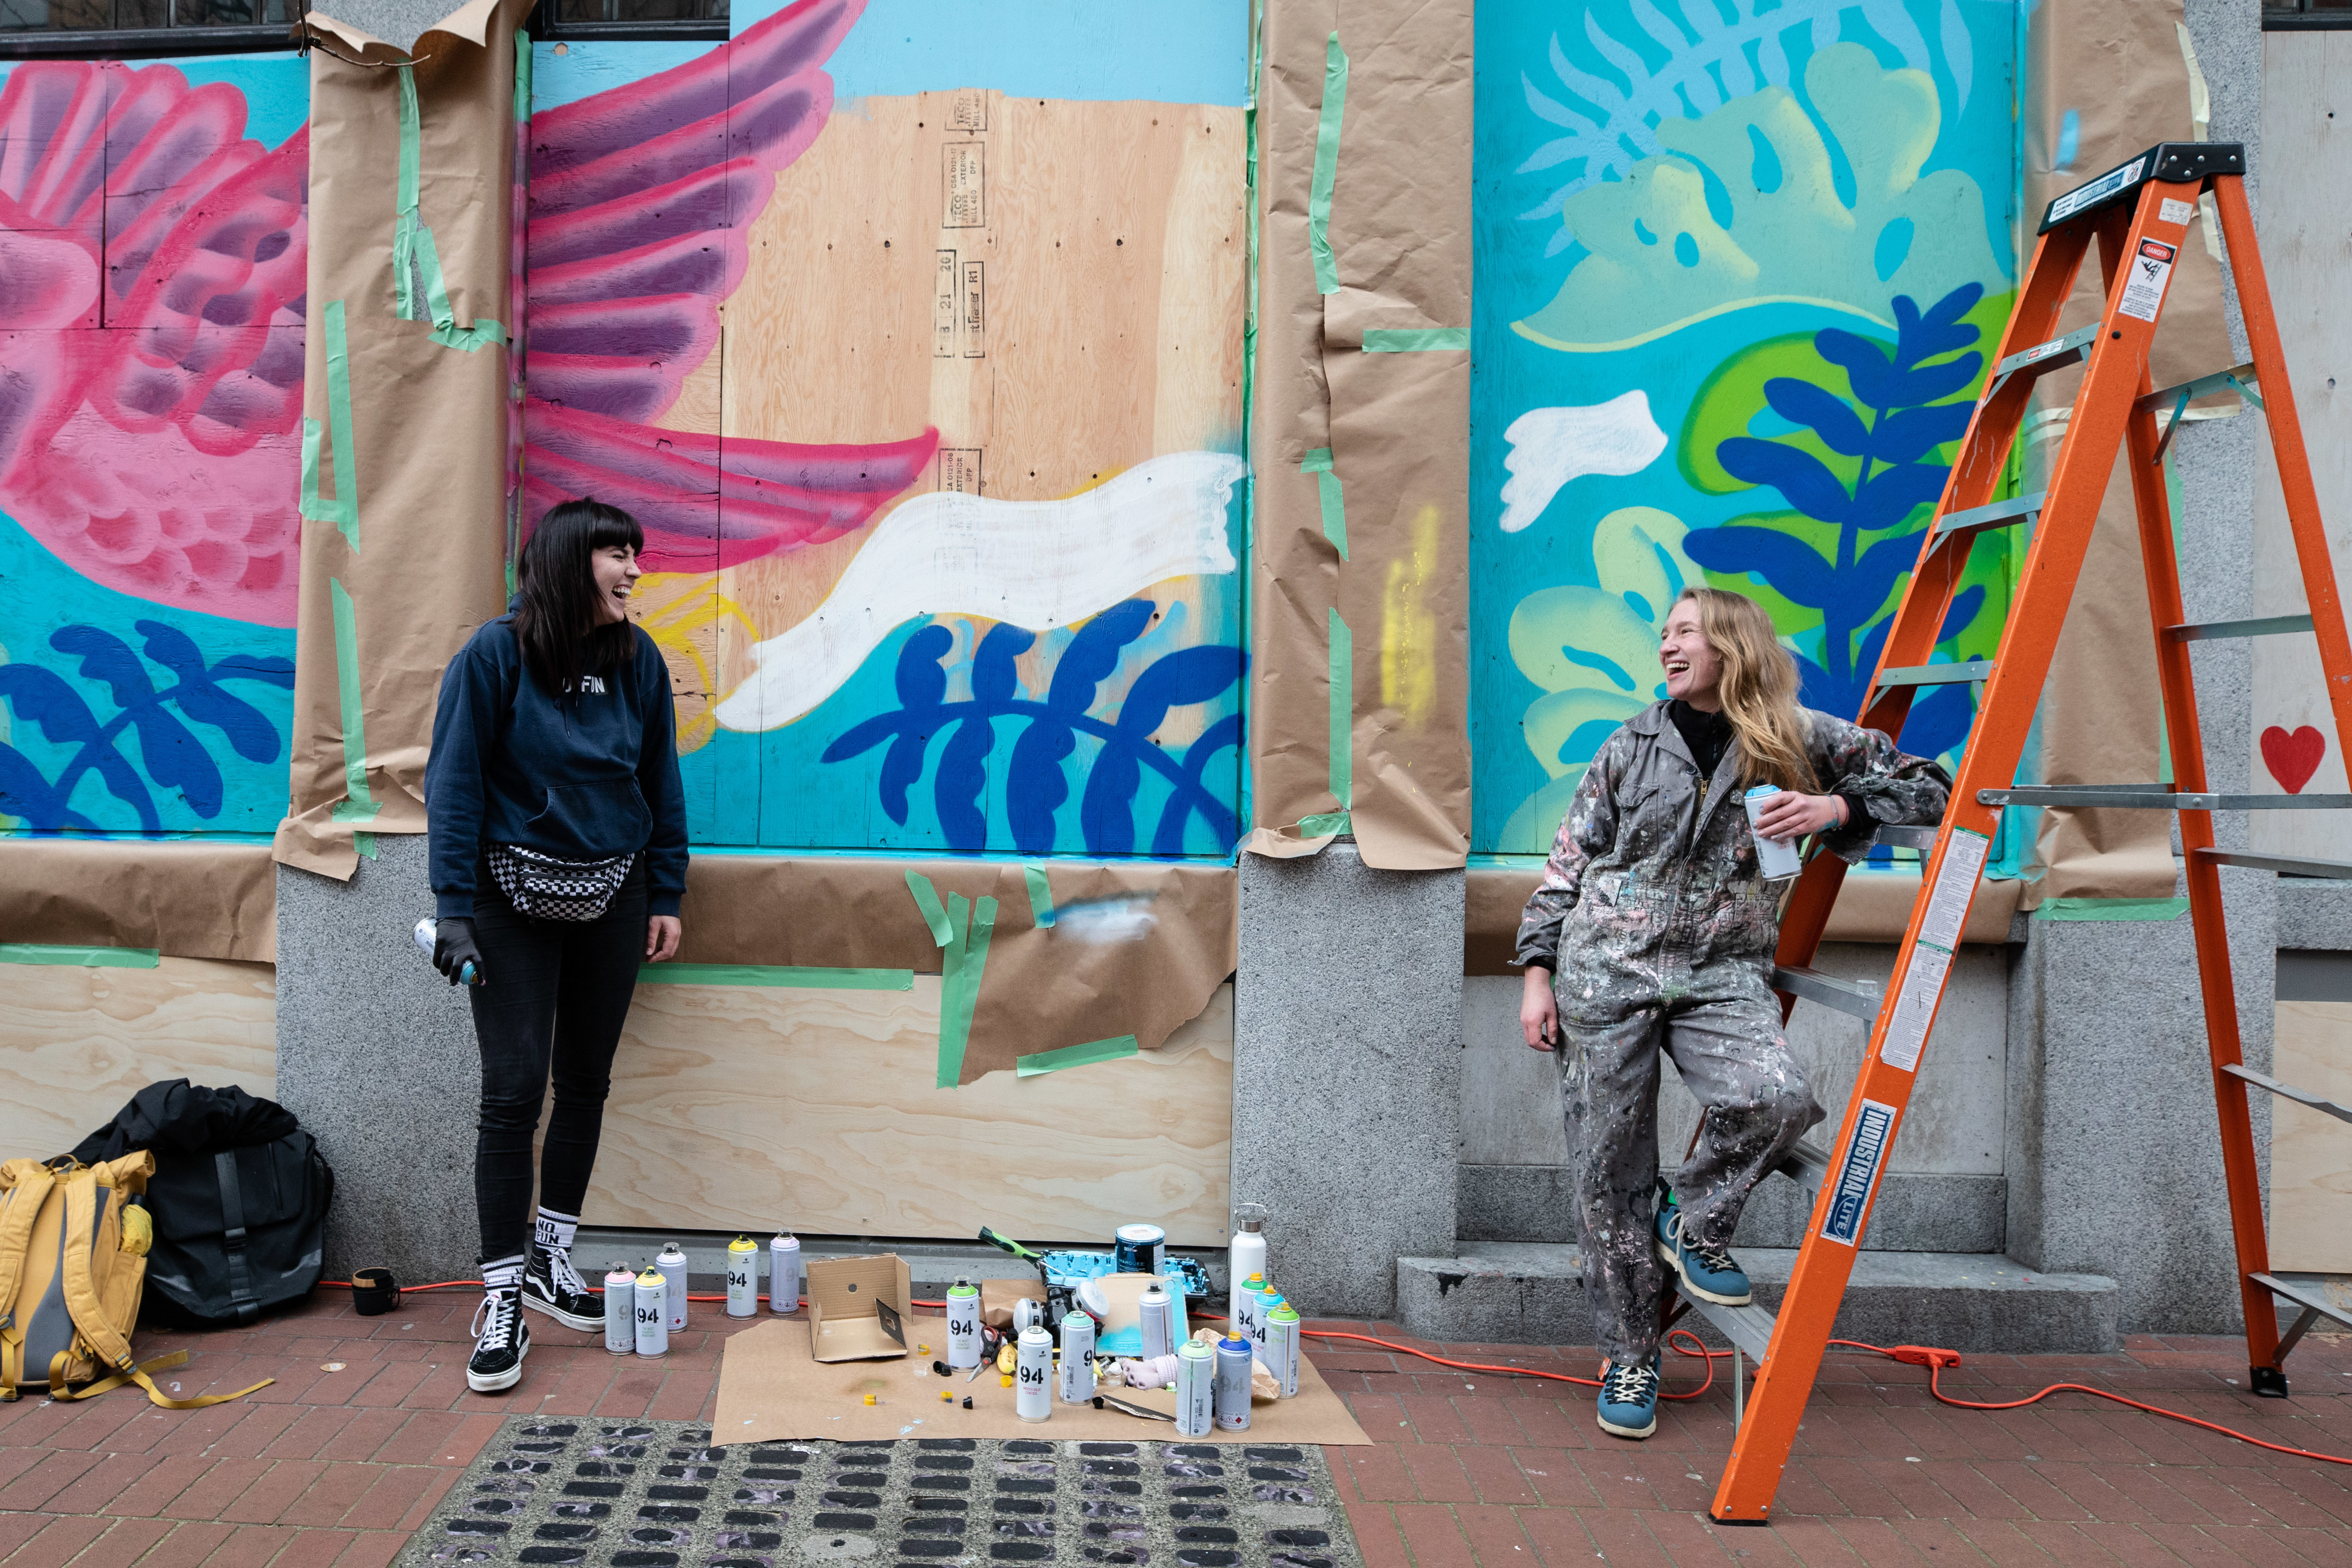 Artists Christina Hryc, left, and Olivia Knight recently finished a two-week quarantine after returning from a mural painting trip to Mexico.